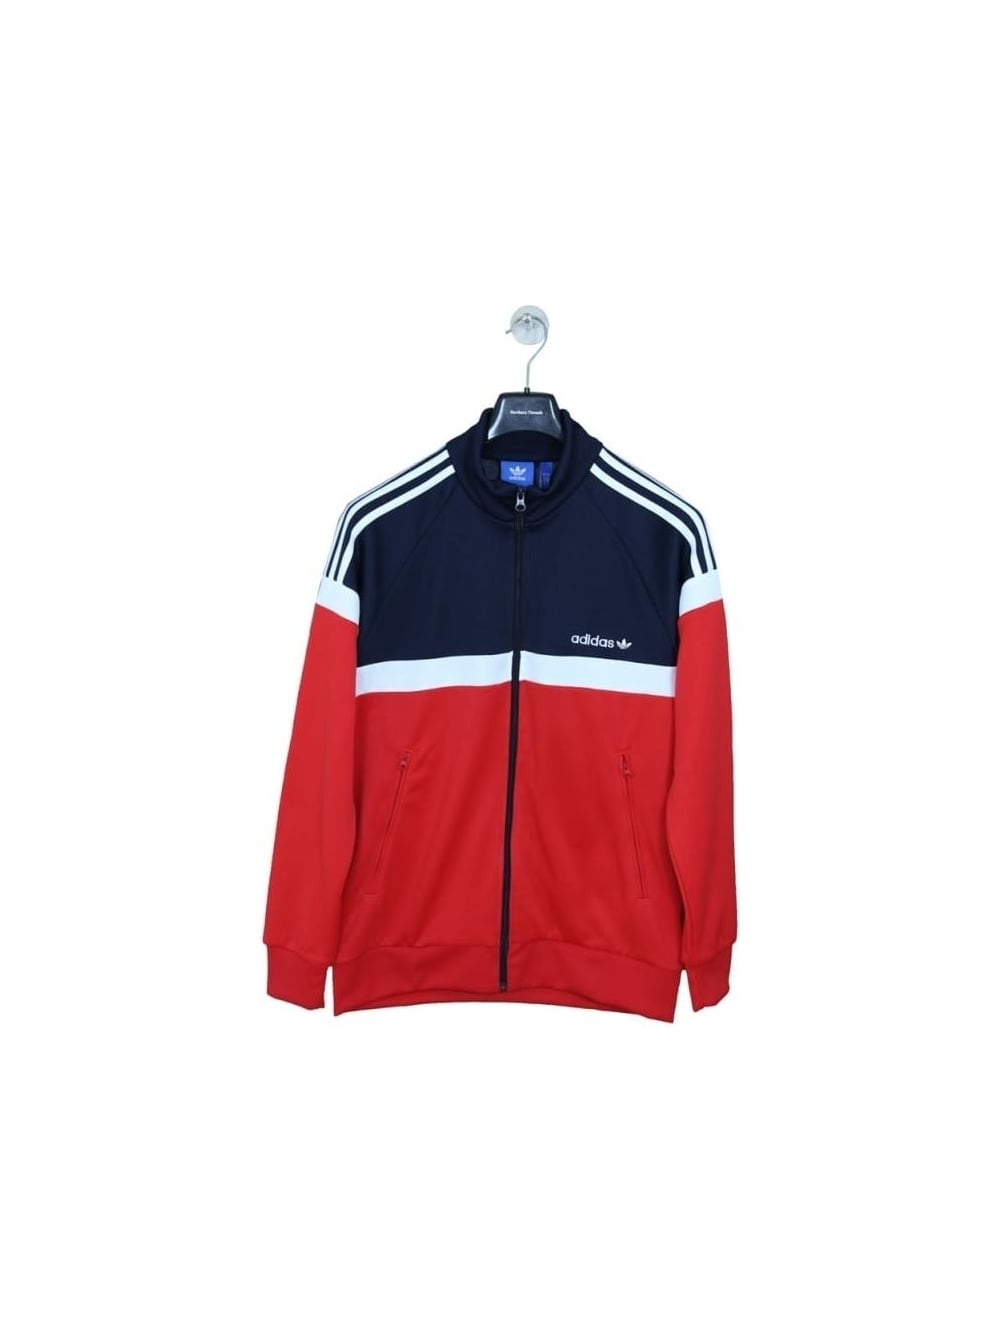 Itasca Track Top - Red